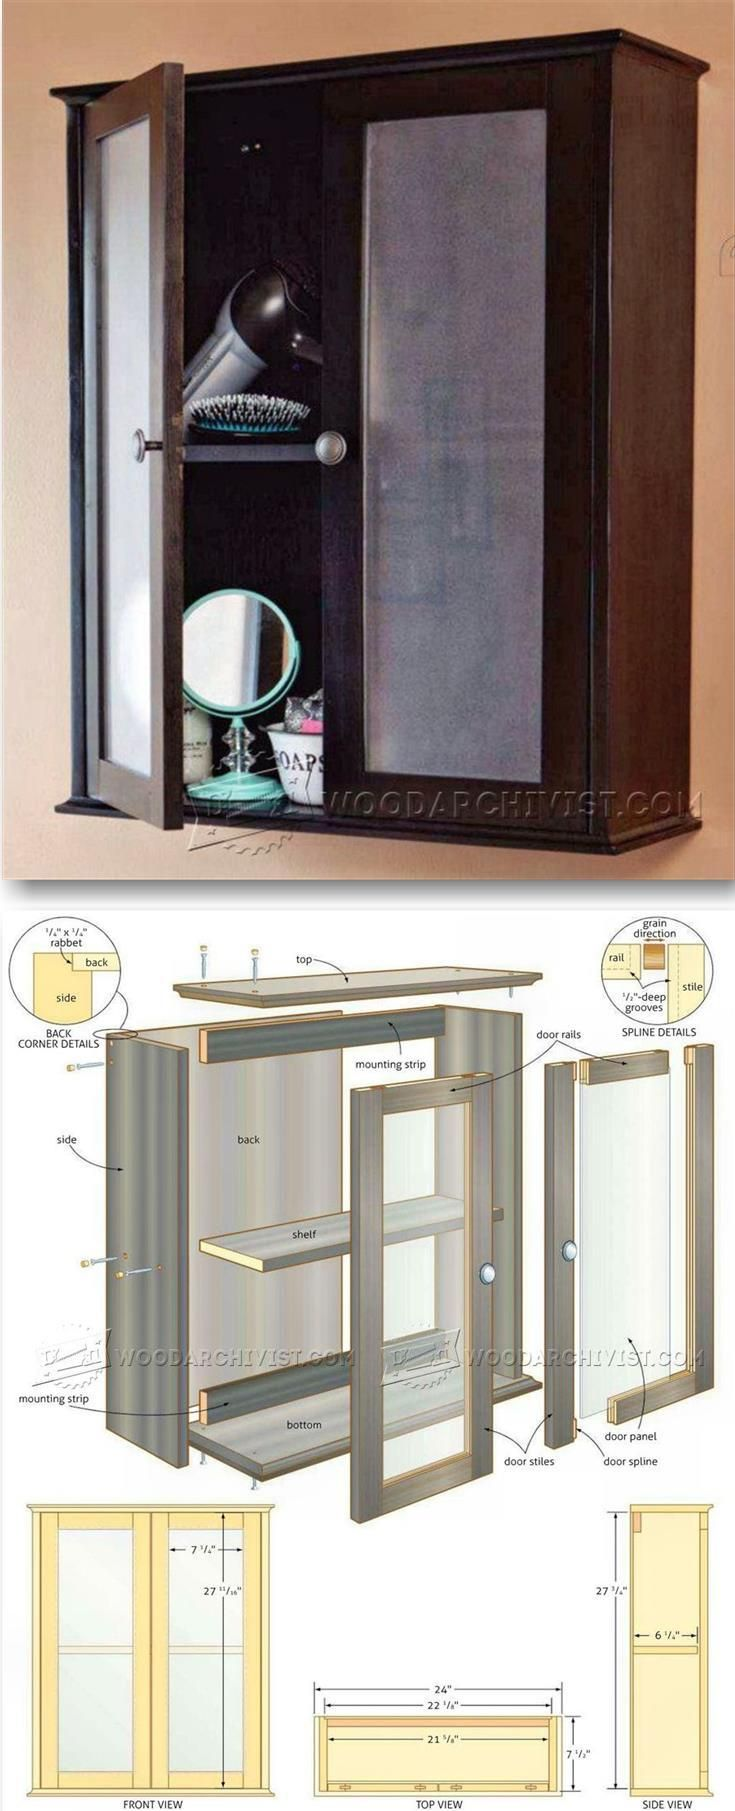 Astonishing Bathroom Wall Cabinet Plans Furniture Plans And Projects Home Interior And Landscaping Ologienasavecom